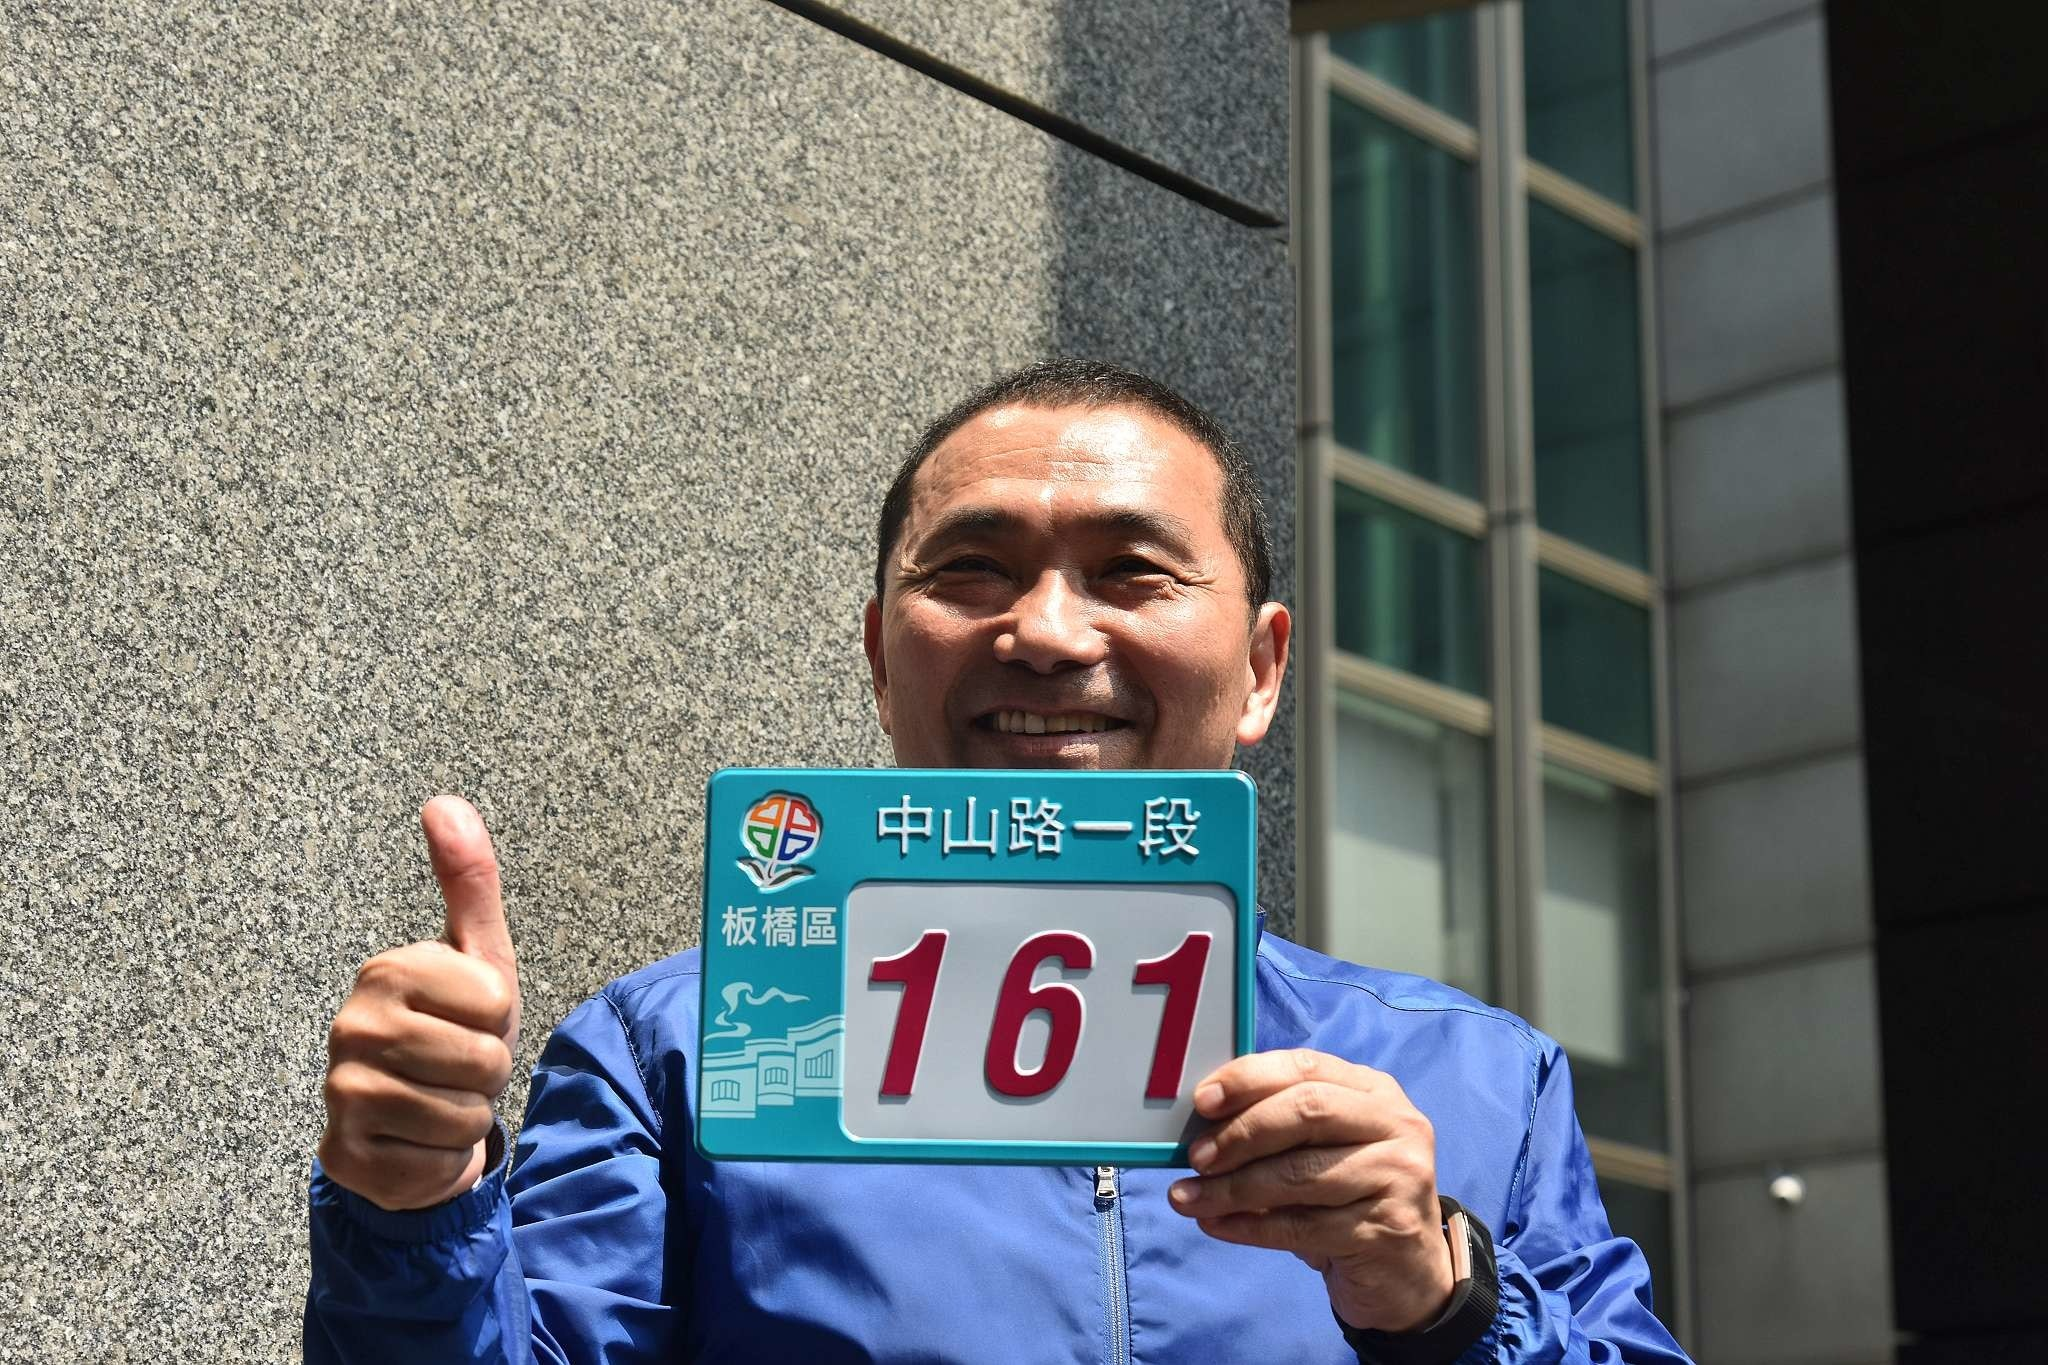 Hou You-Yi, New Taipei City Government, New Taipei City, House numbering, City Hall Road, District, Mayor, Letter box, Advertising, News, demonstration, Finger, Hand, Smile, Photography, Gesture, Protest, Street, Glasses